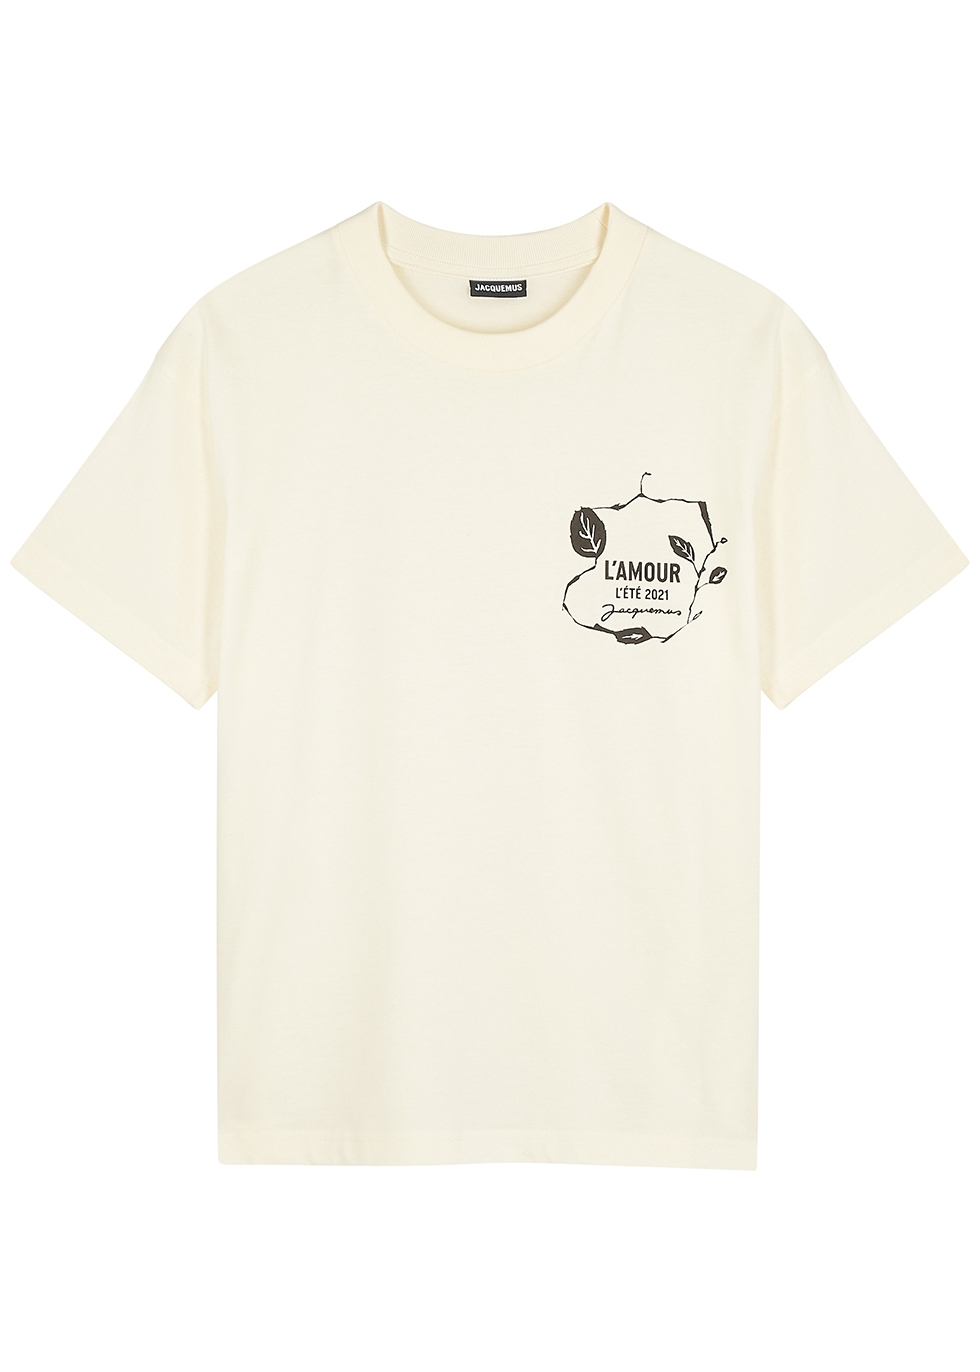 Le T-shirt L'Amour cream cotton T-shirt